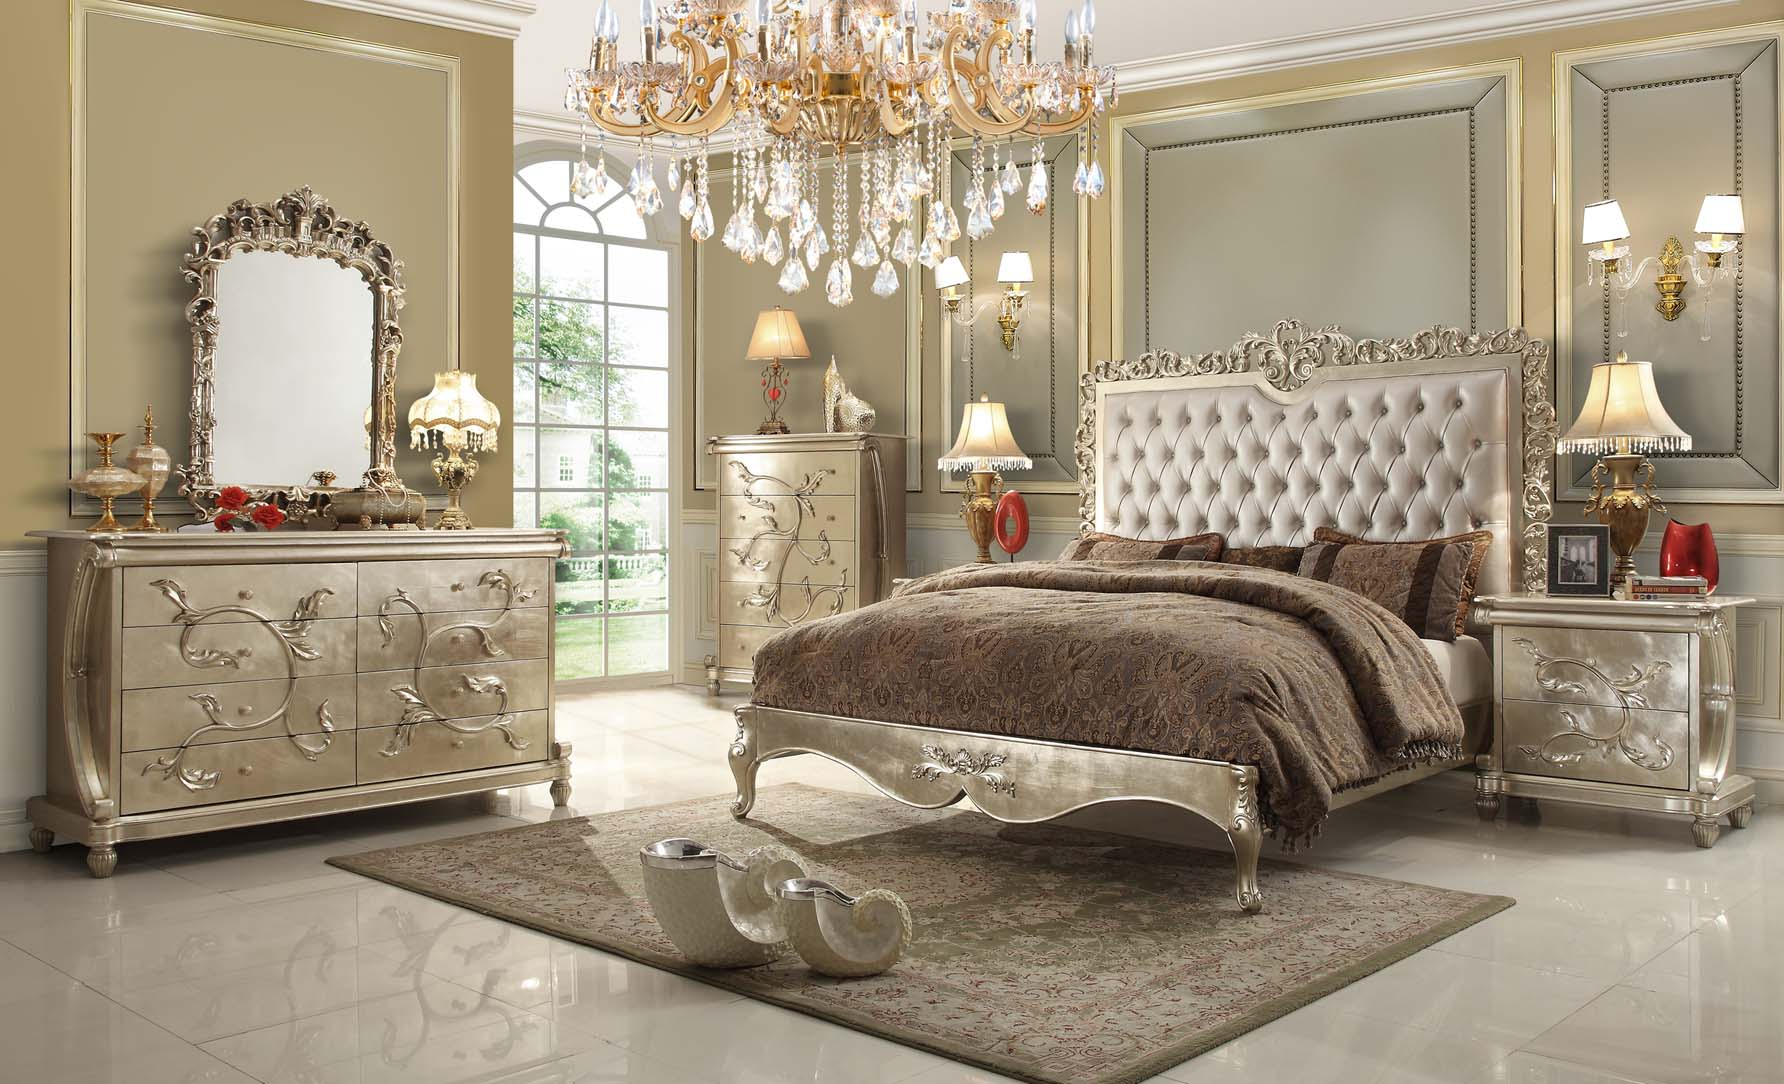 Pearl victorian design bedroom set from homey design Victorian bedrooms